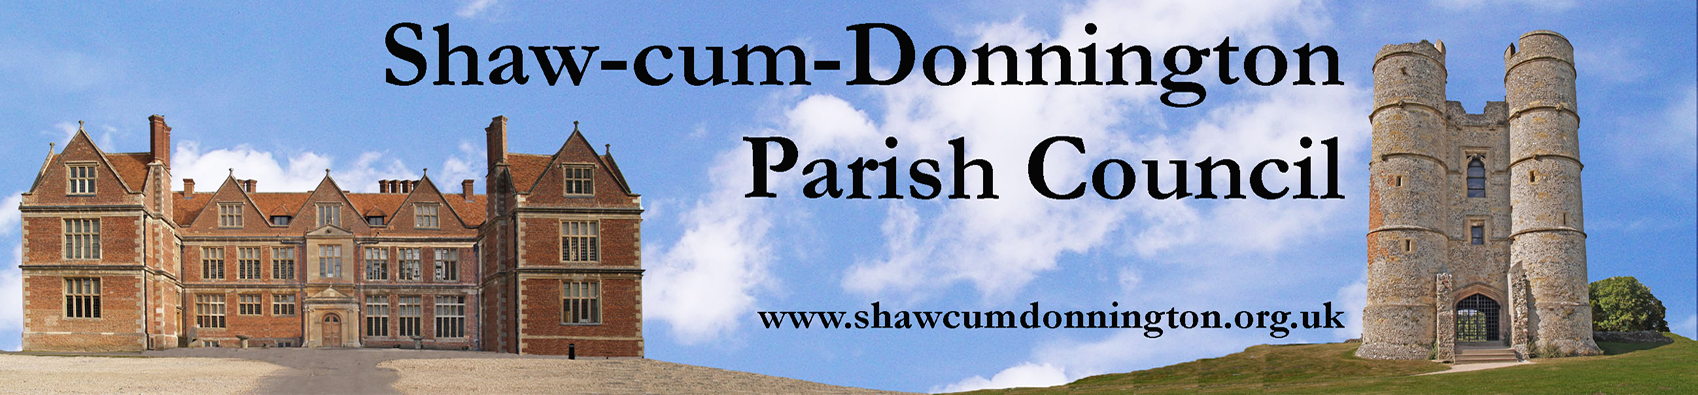 Shaw-cum-Donnington Parish Council